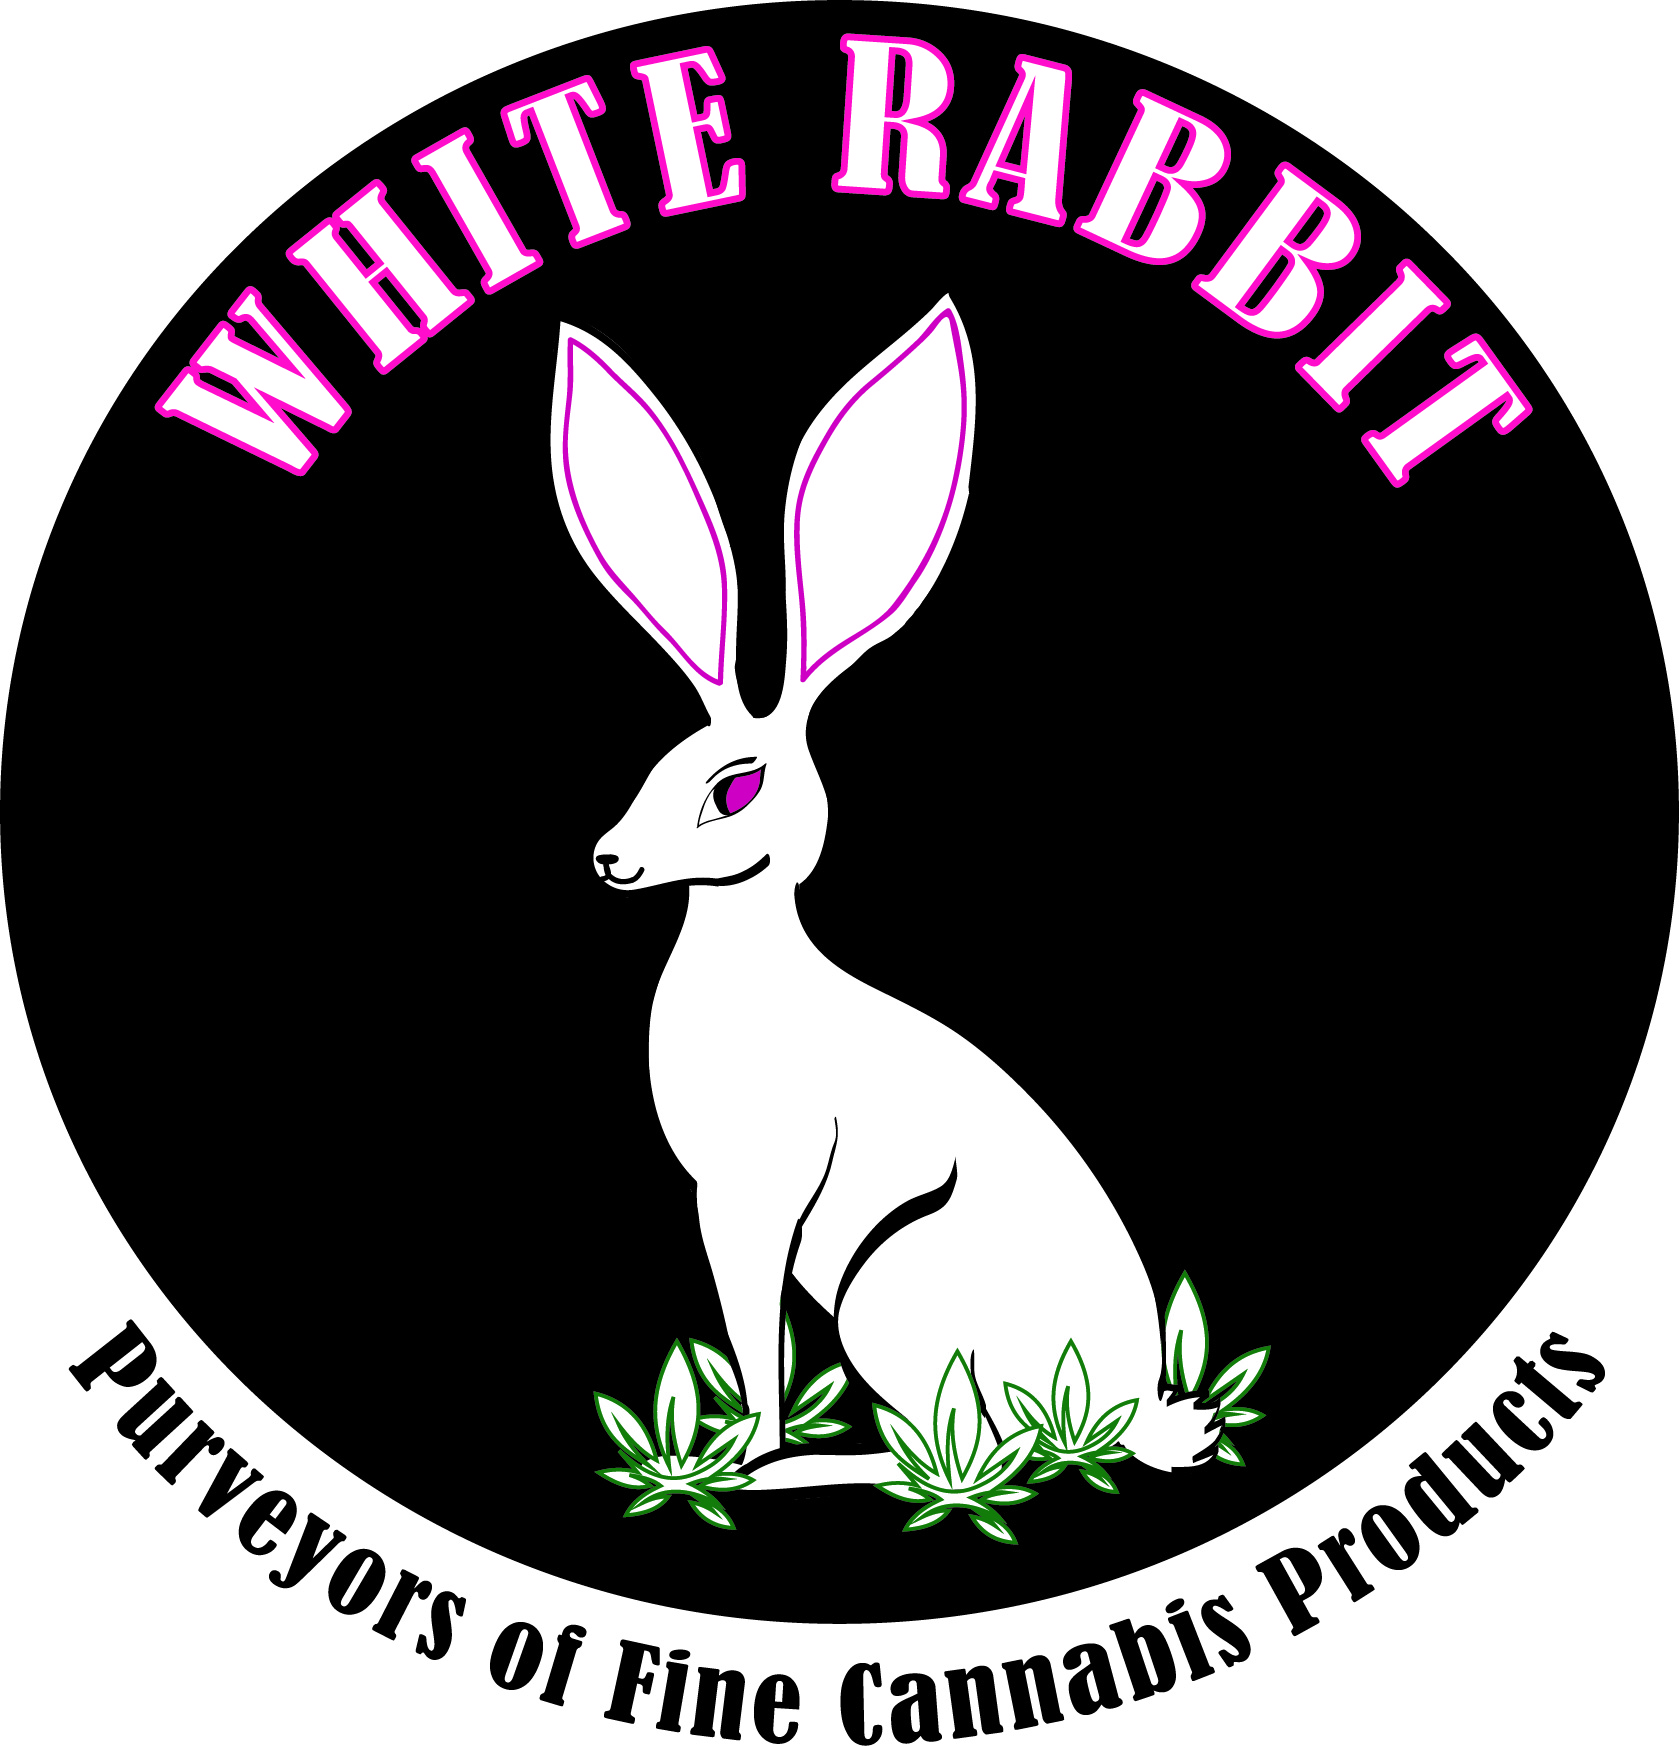 White Rabbit Cannabis Franchise Opportunity